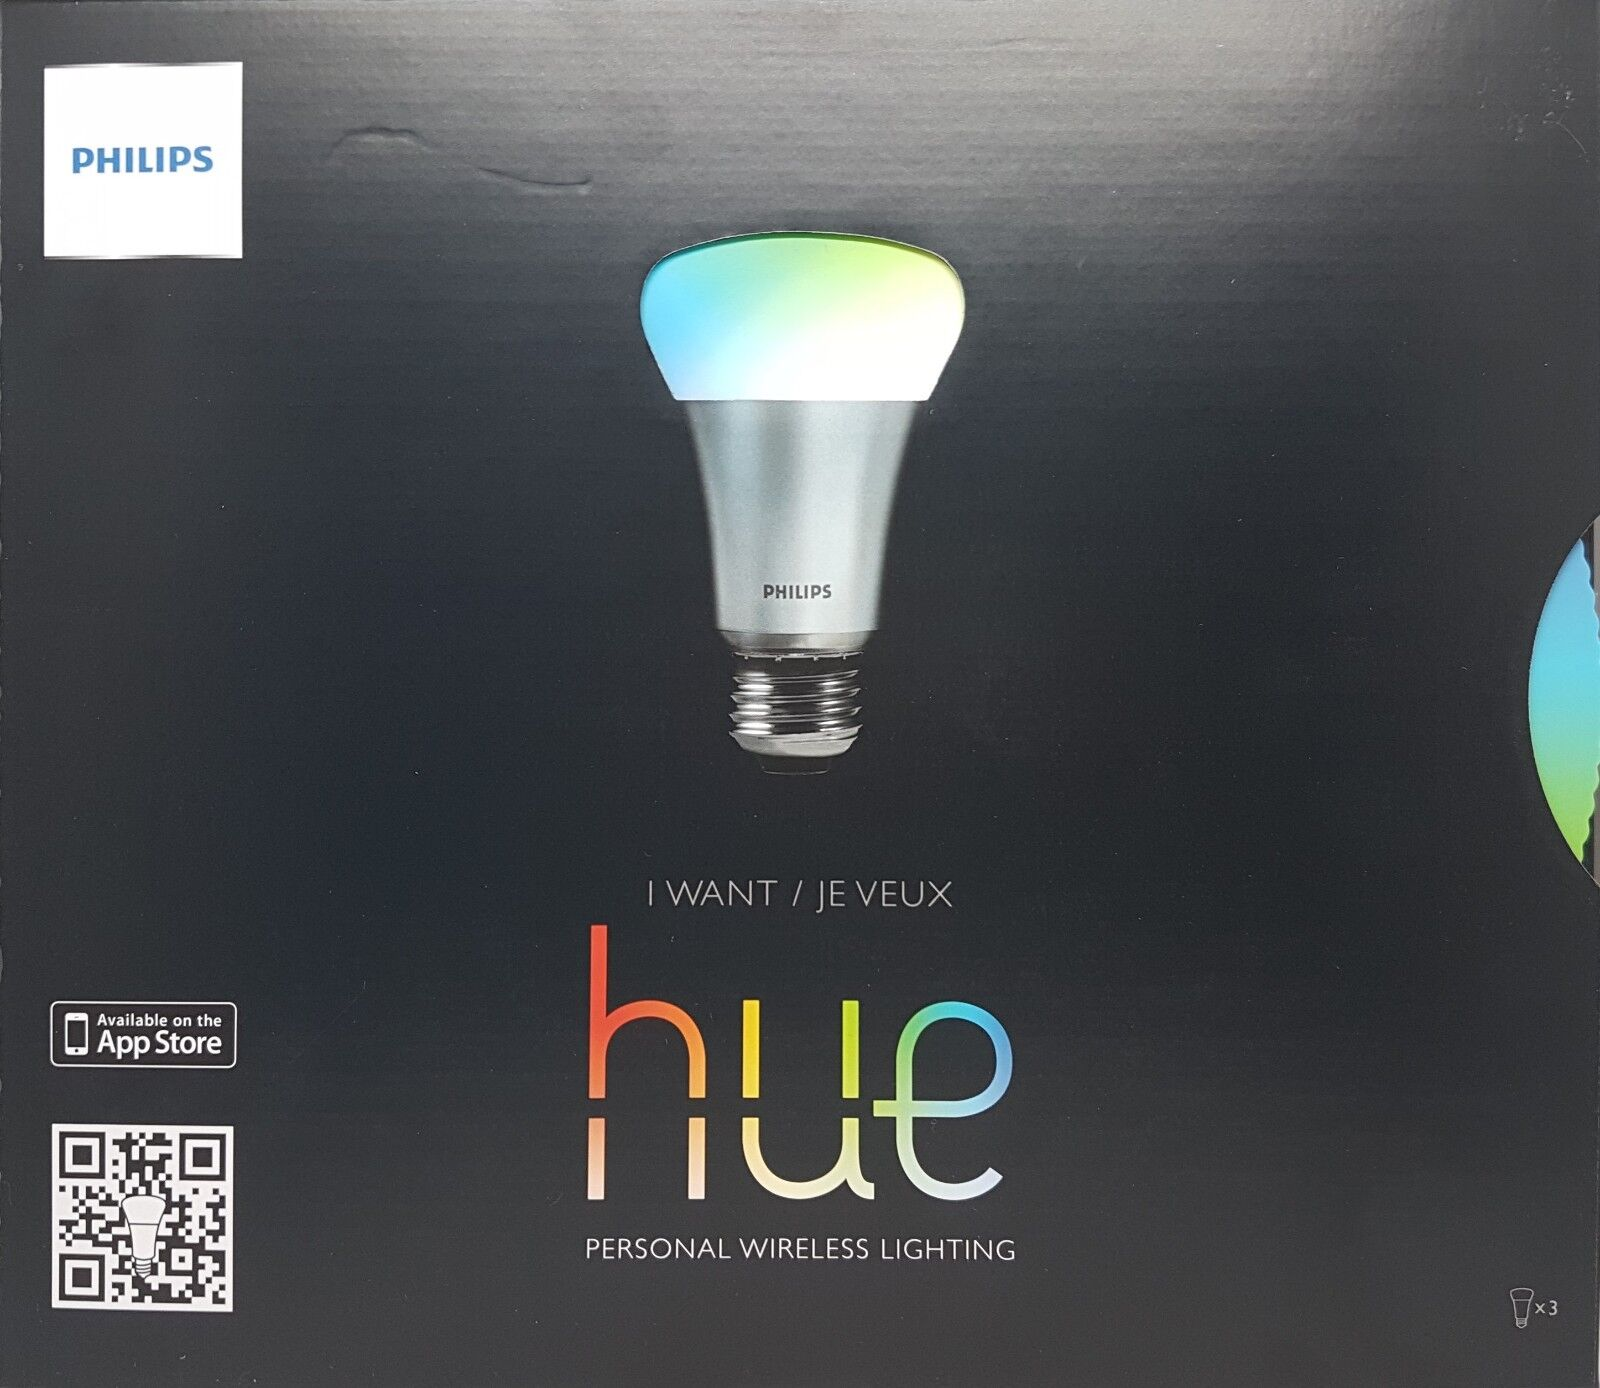 Philips hue-led personal Wireless Lighting - 3 x 9w a60 e27-Starter Kit